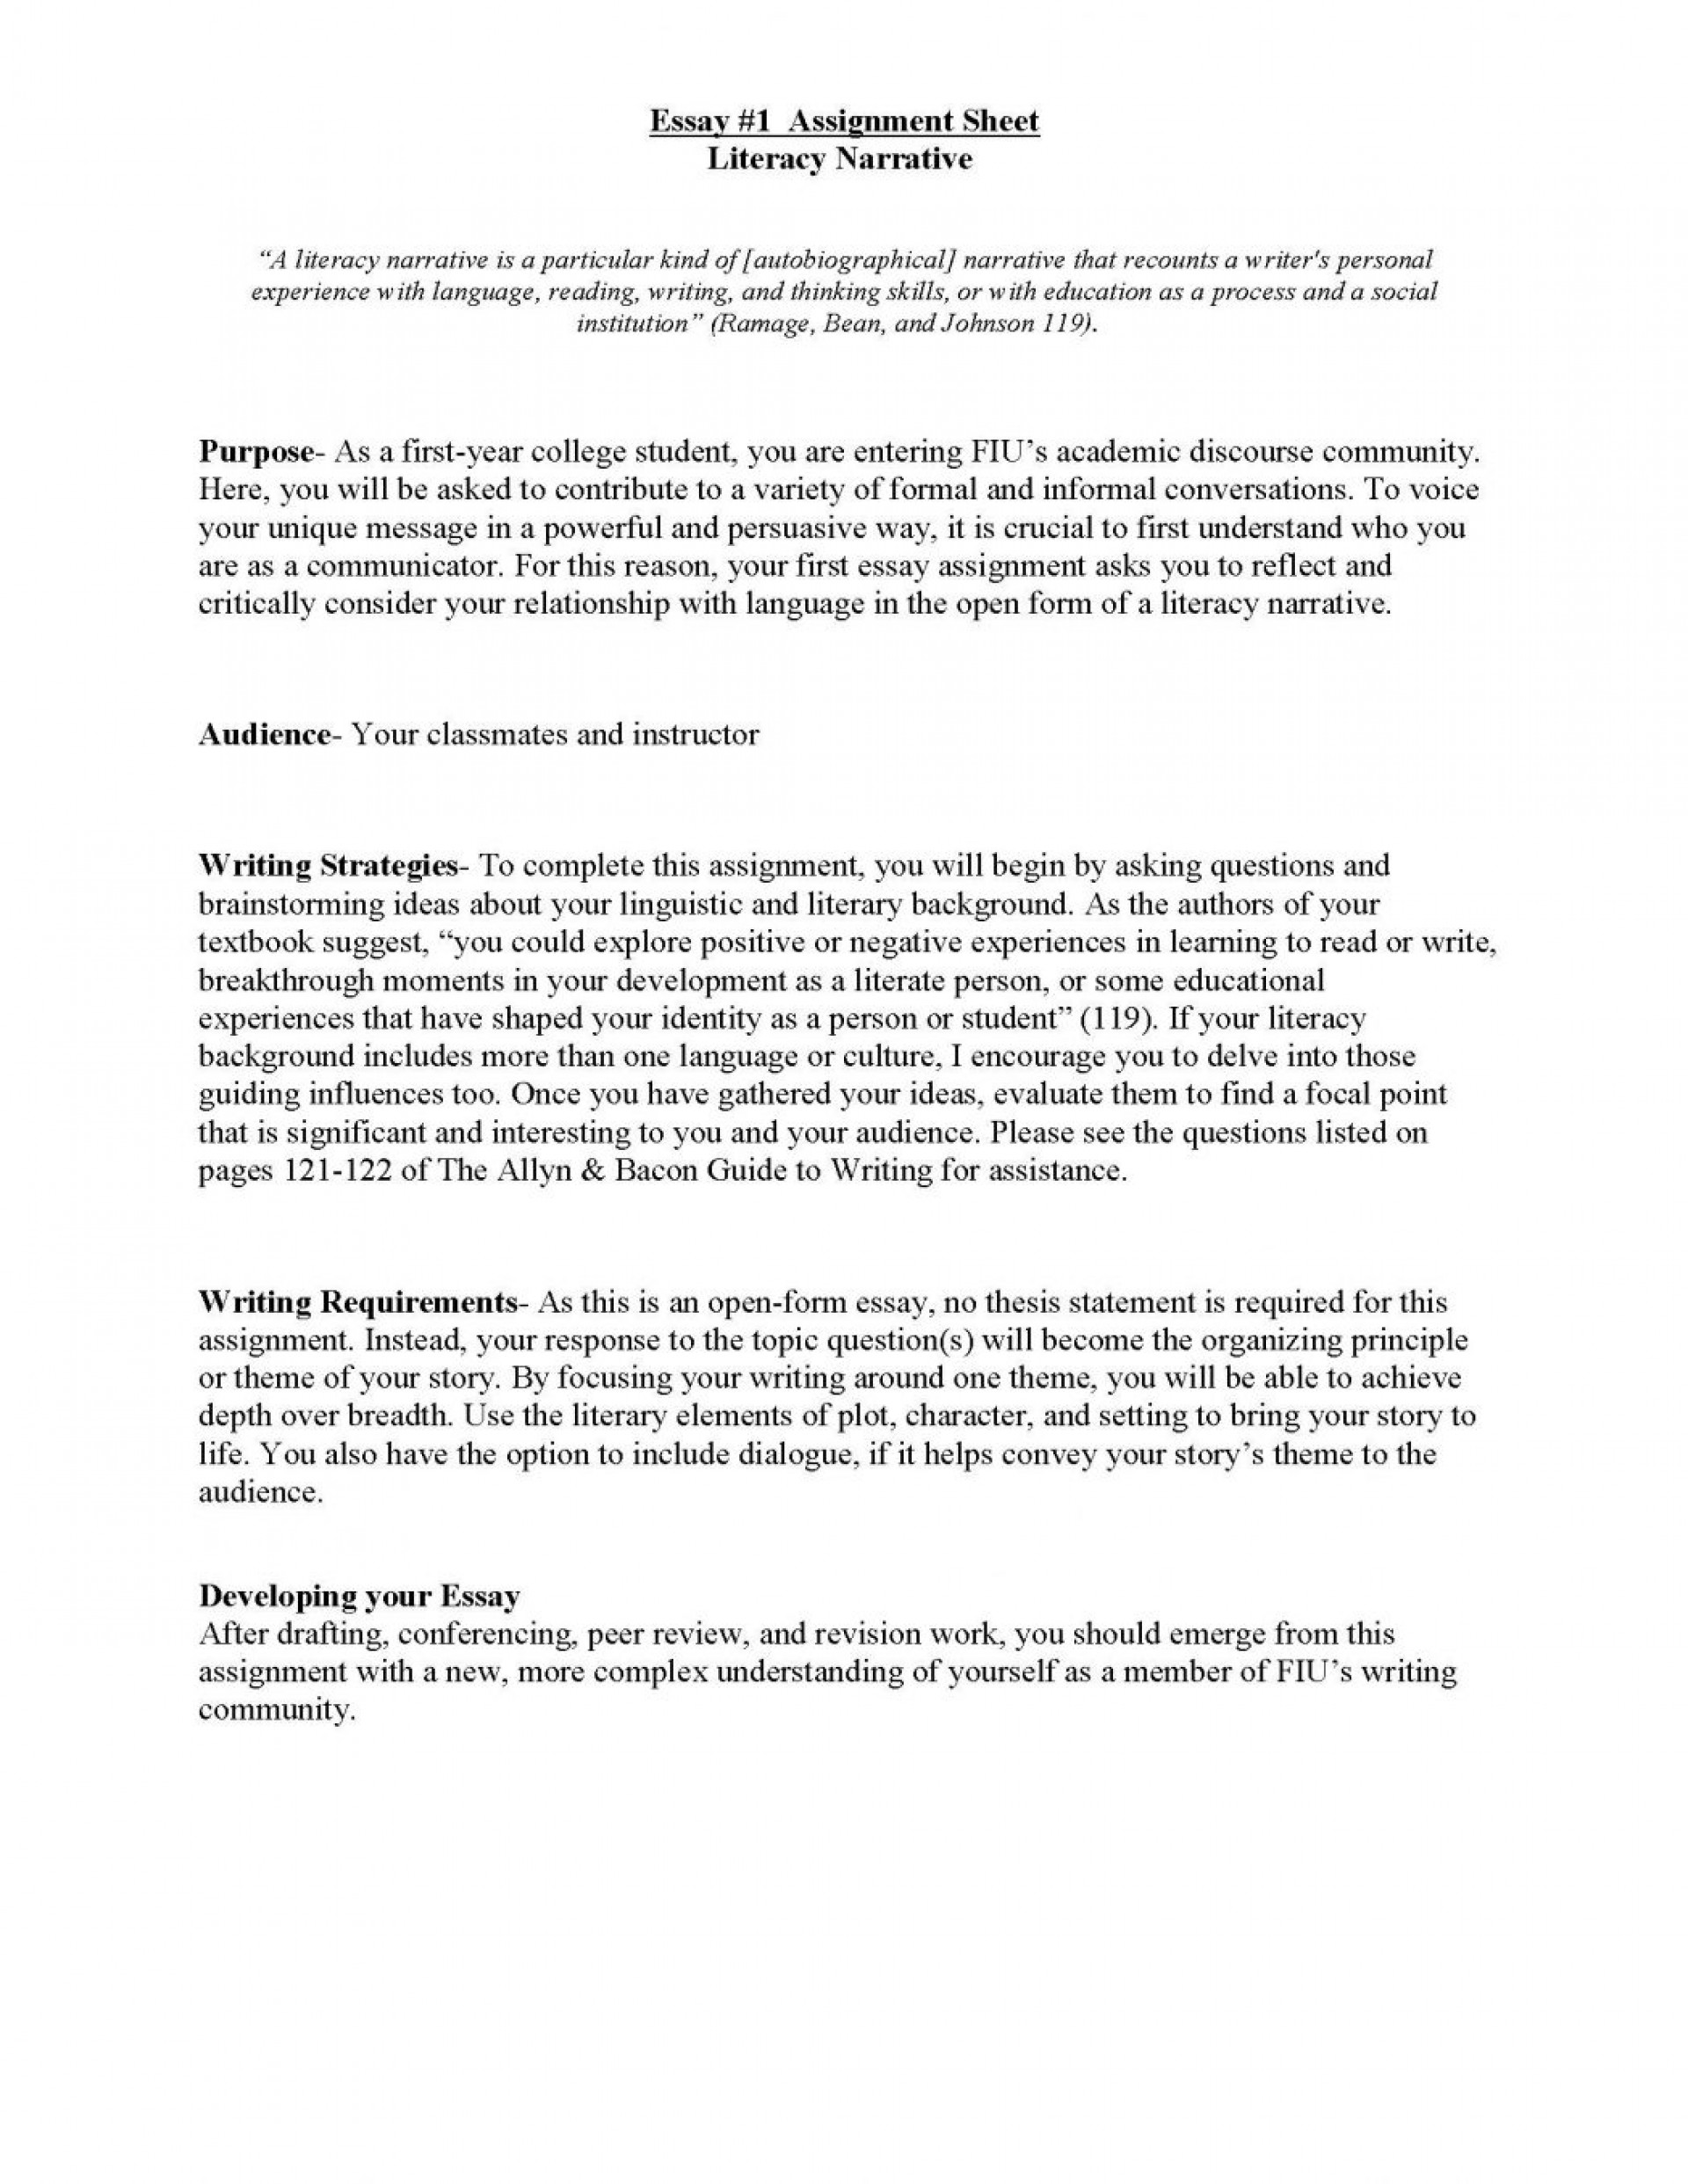 010 Thesis Statement For Narrative Essayes Of Outline Good Descriptive Topics Literacy Unit Assignment Spring 2012 P Personale 1048x1356 Staggering Essay The A Should Be Created During Brainly 1920